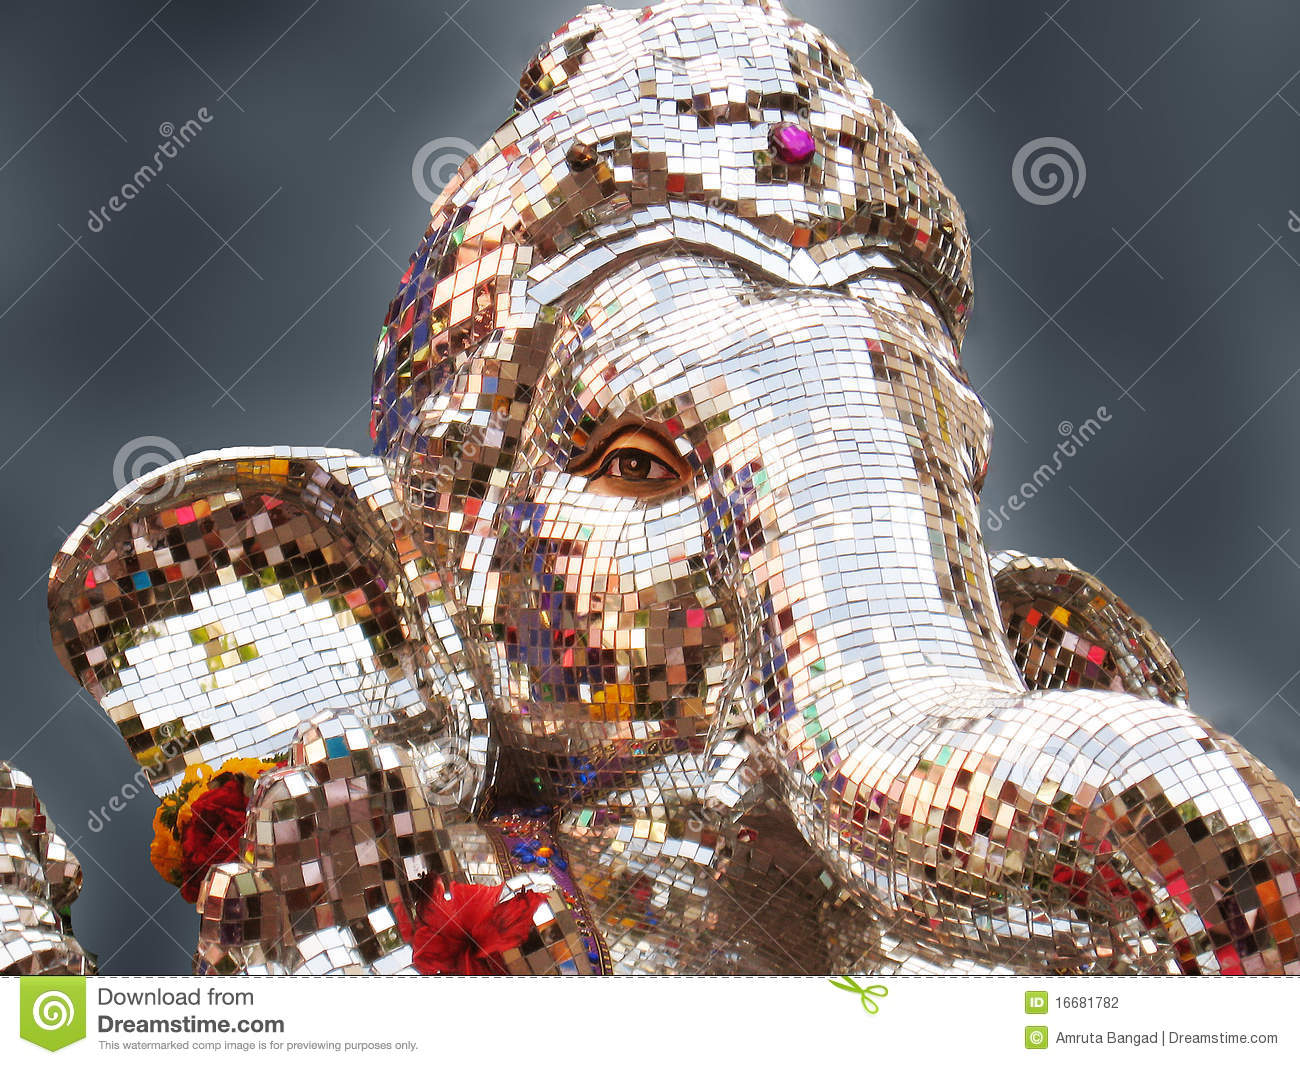 Lord ganesha multi color painting hd image - Lord Ganesha Stock Photography